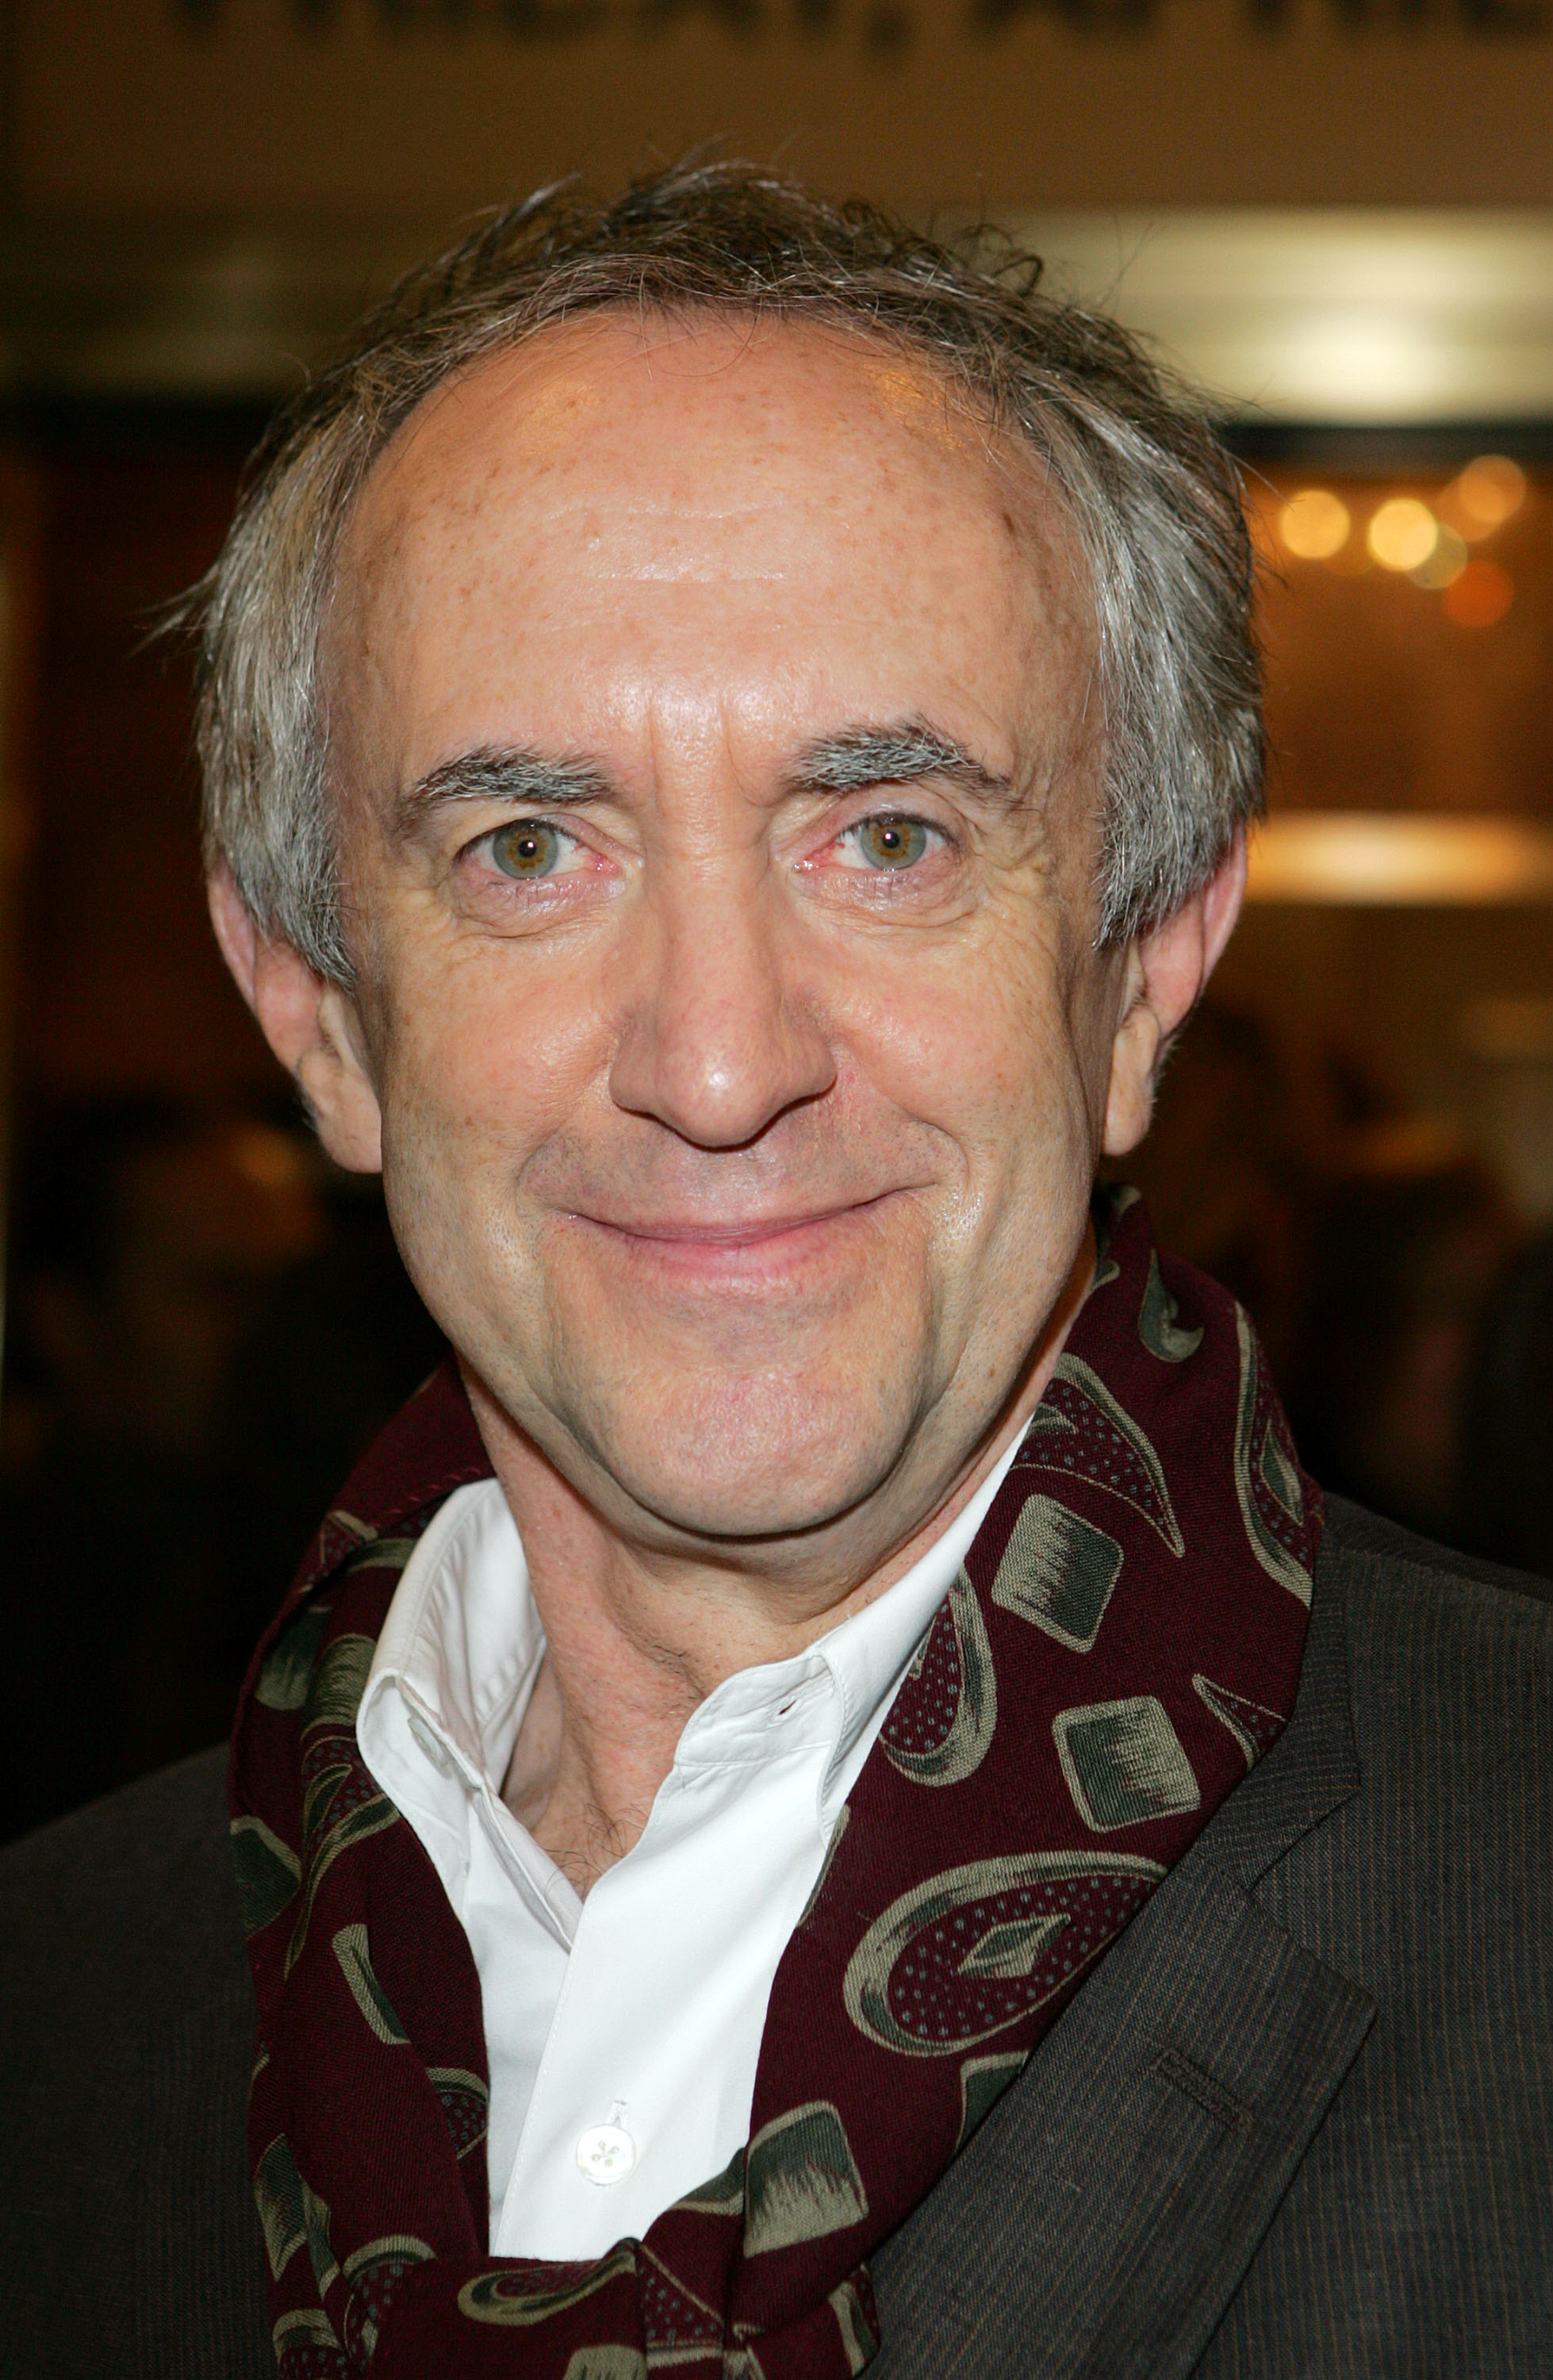 jonathan pryce game of thrones wiki fandom powered by wikia